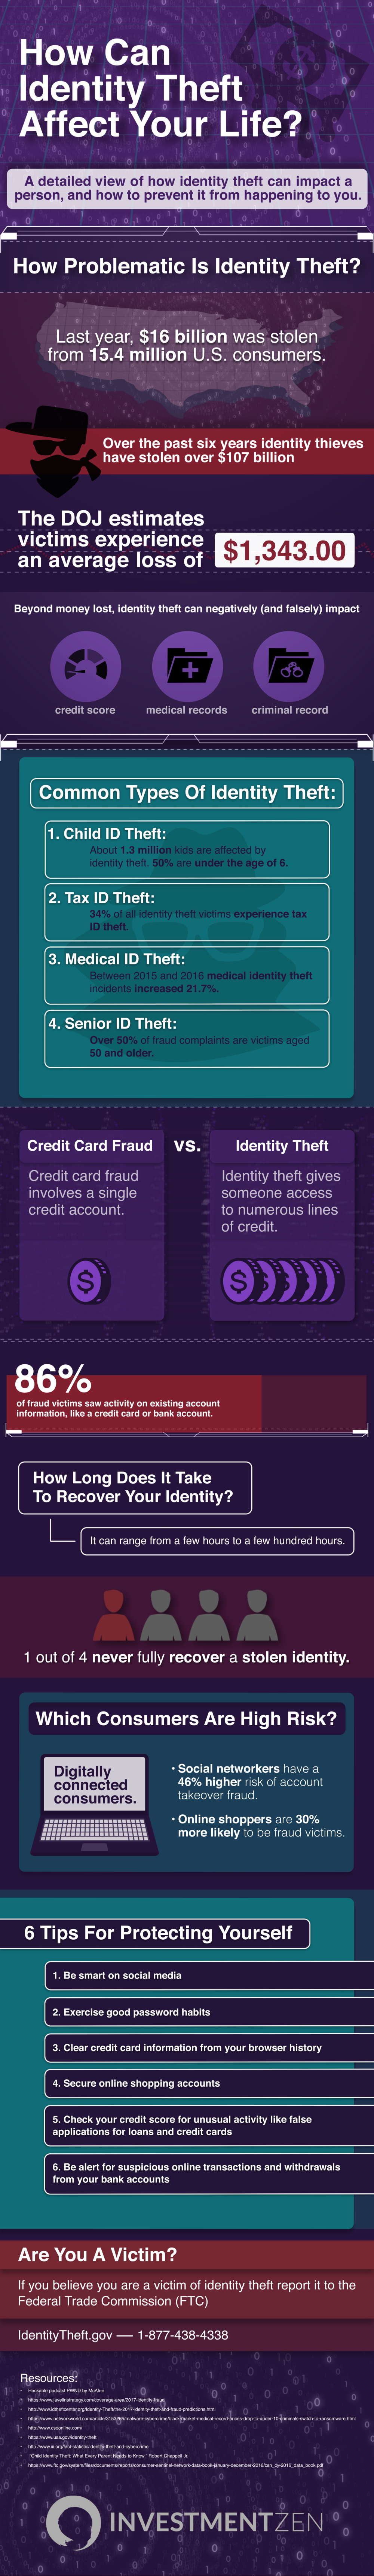 Identity Theft: 6 Tips to Protect Yourself - Infographic